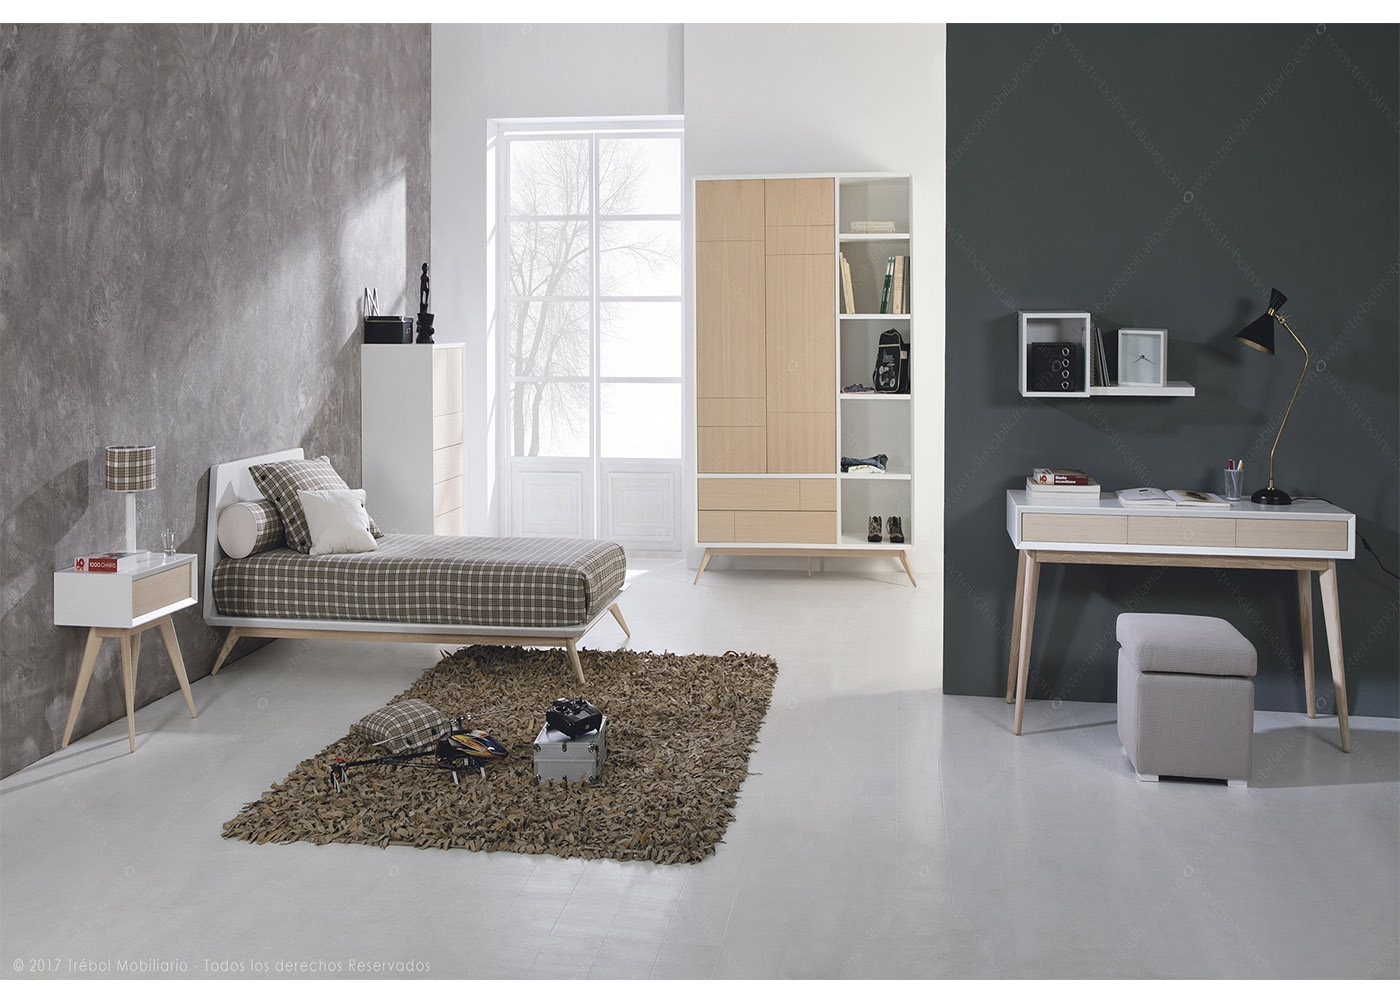 chambre ado au design scandinave haute qualit chez ksl living. Black Bedroom Furniture Sets. Home Design Ideas